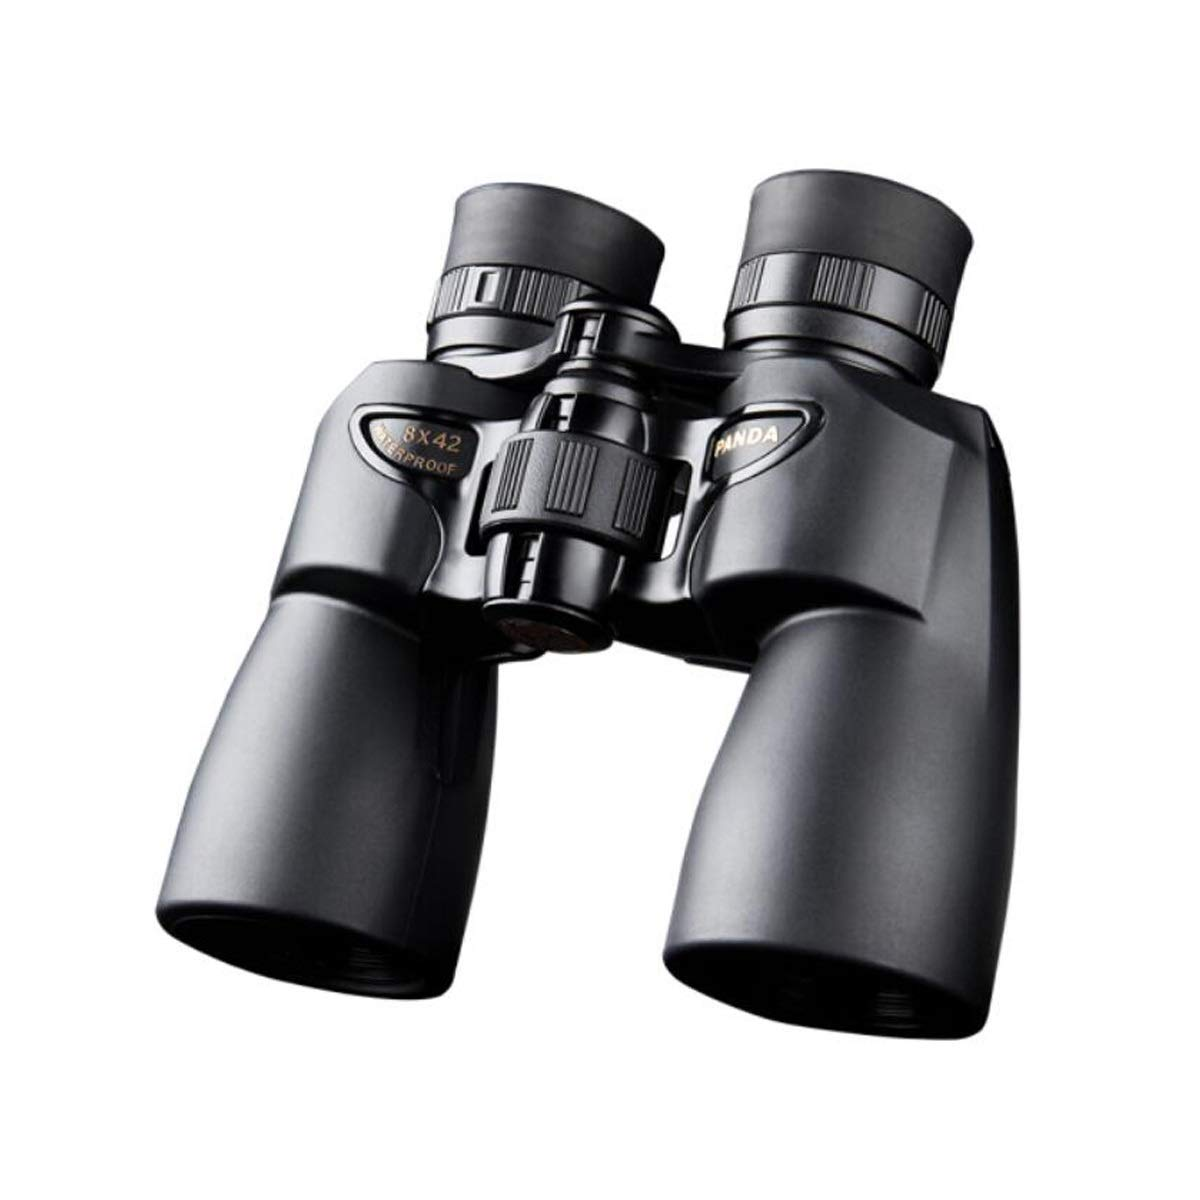 Kaiyitong Telescope, Binoculars, High-Definition Low-Light Night Vision Nitrogen-Filled Waterproof Telescope (Color : Black)